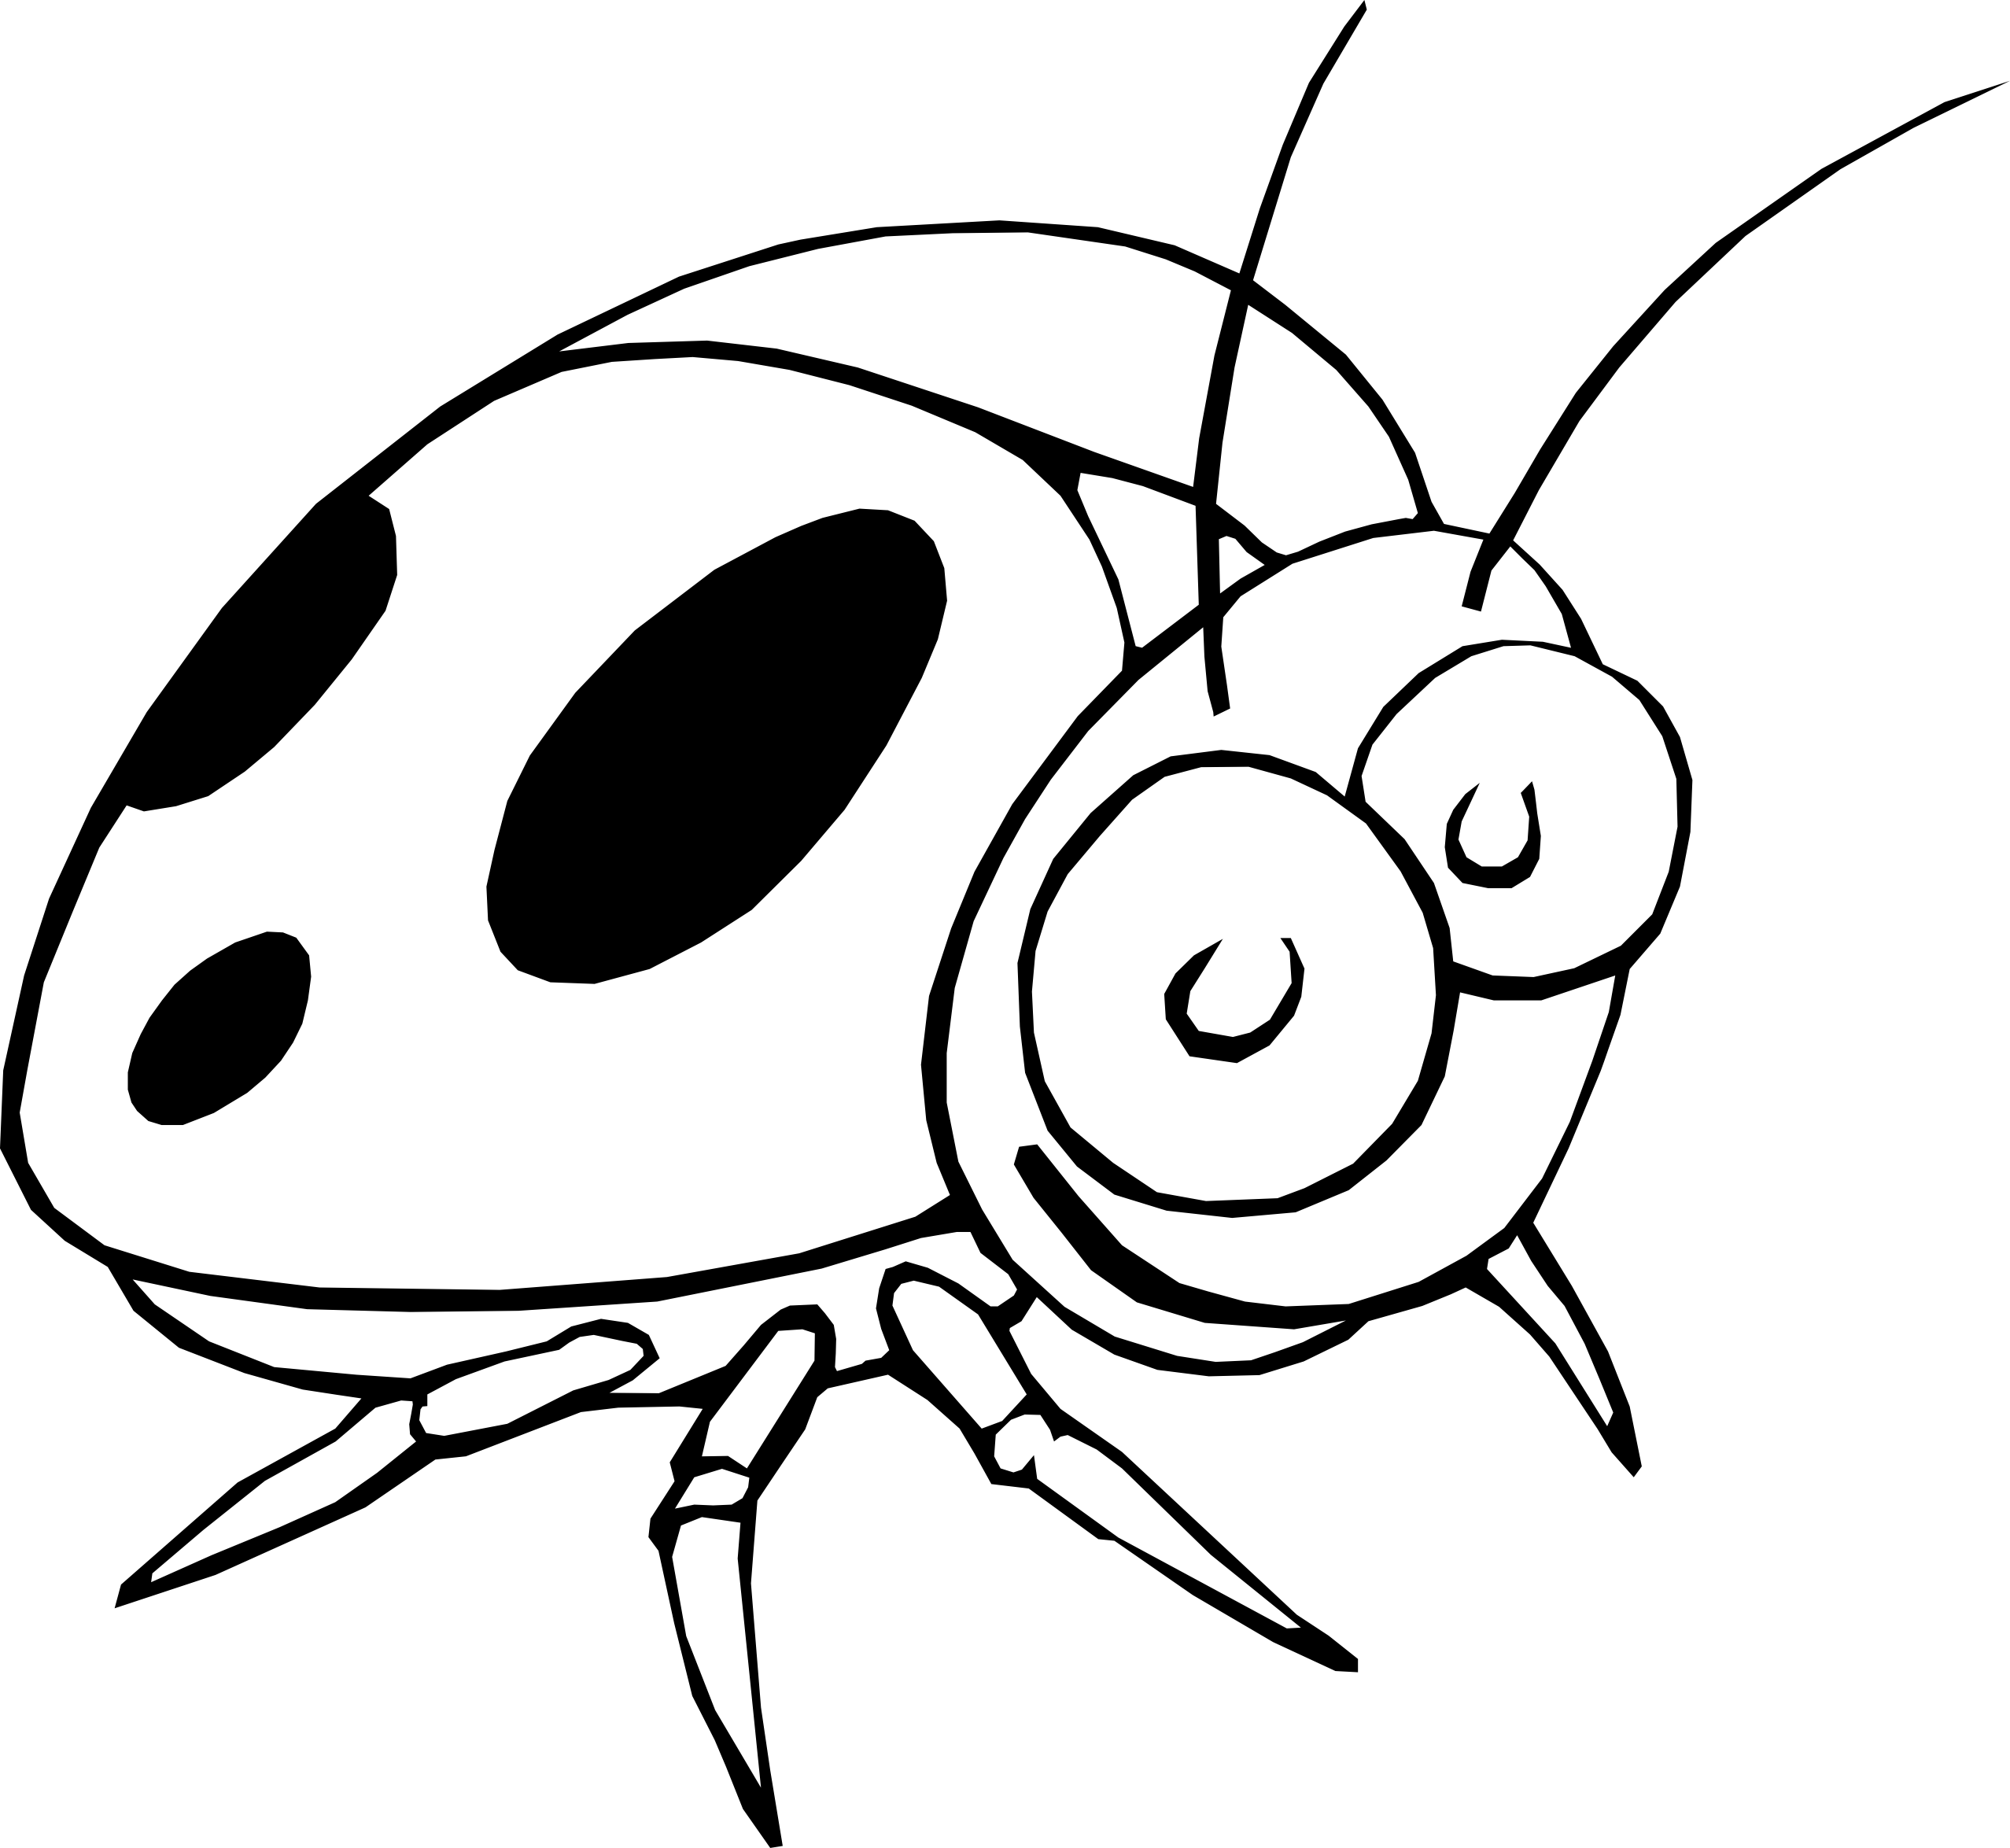 Cute Ladybug Coloring Pages to Print